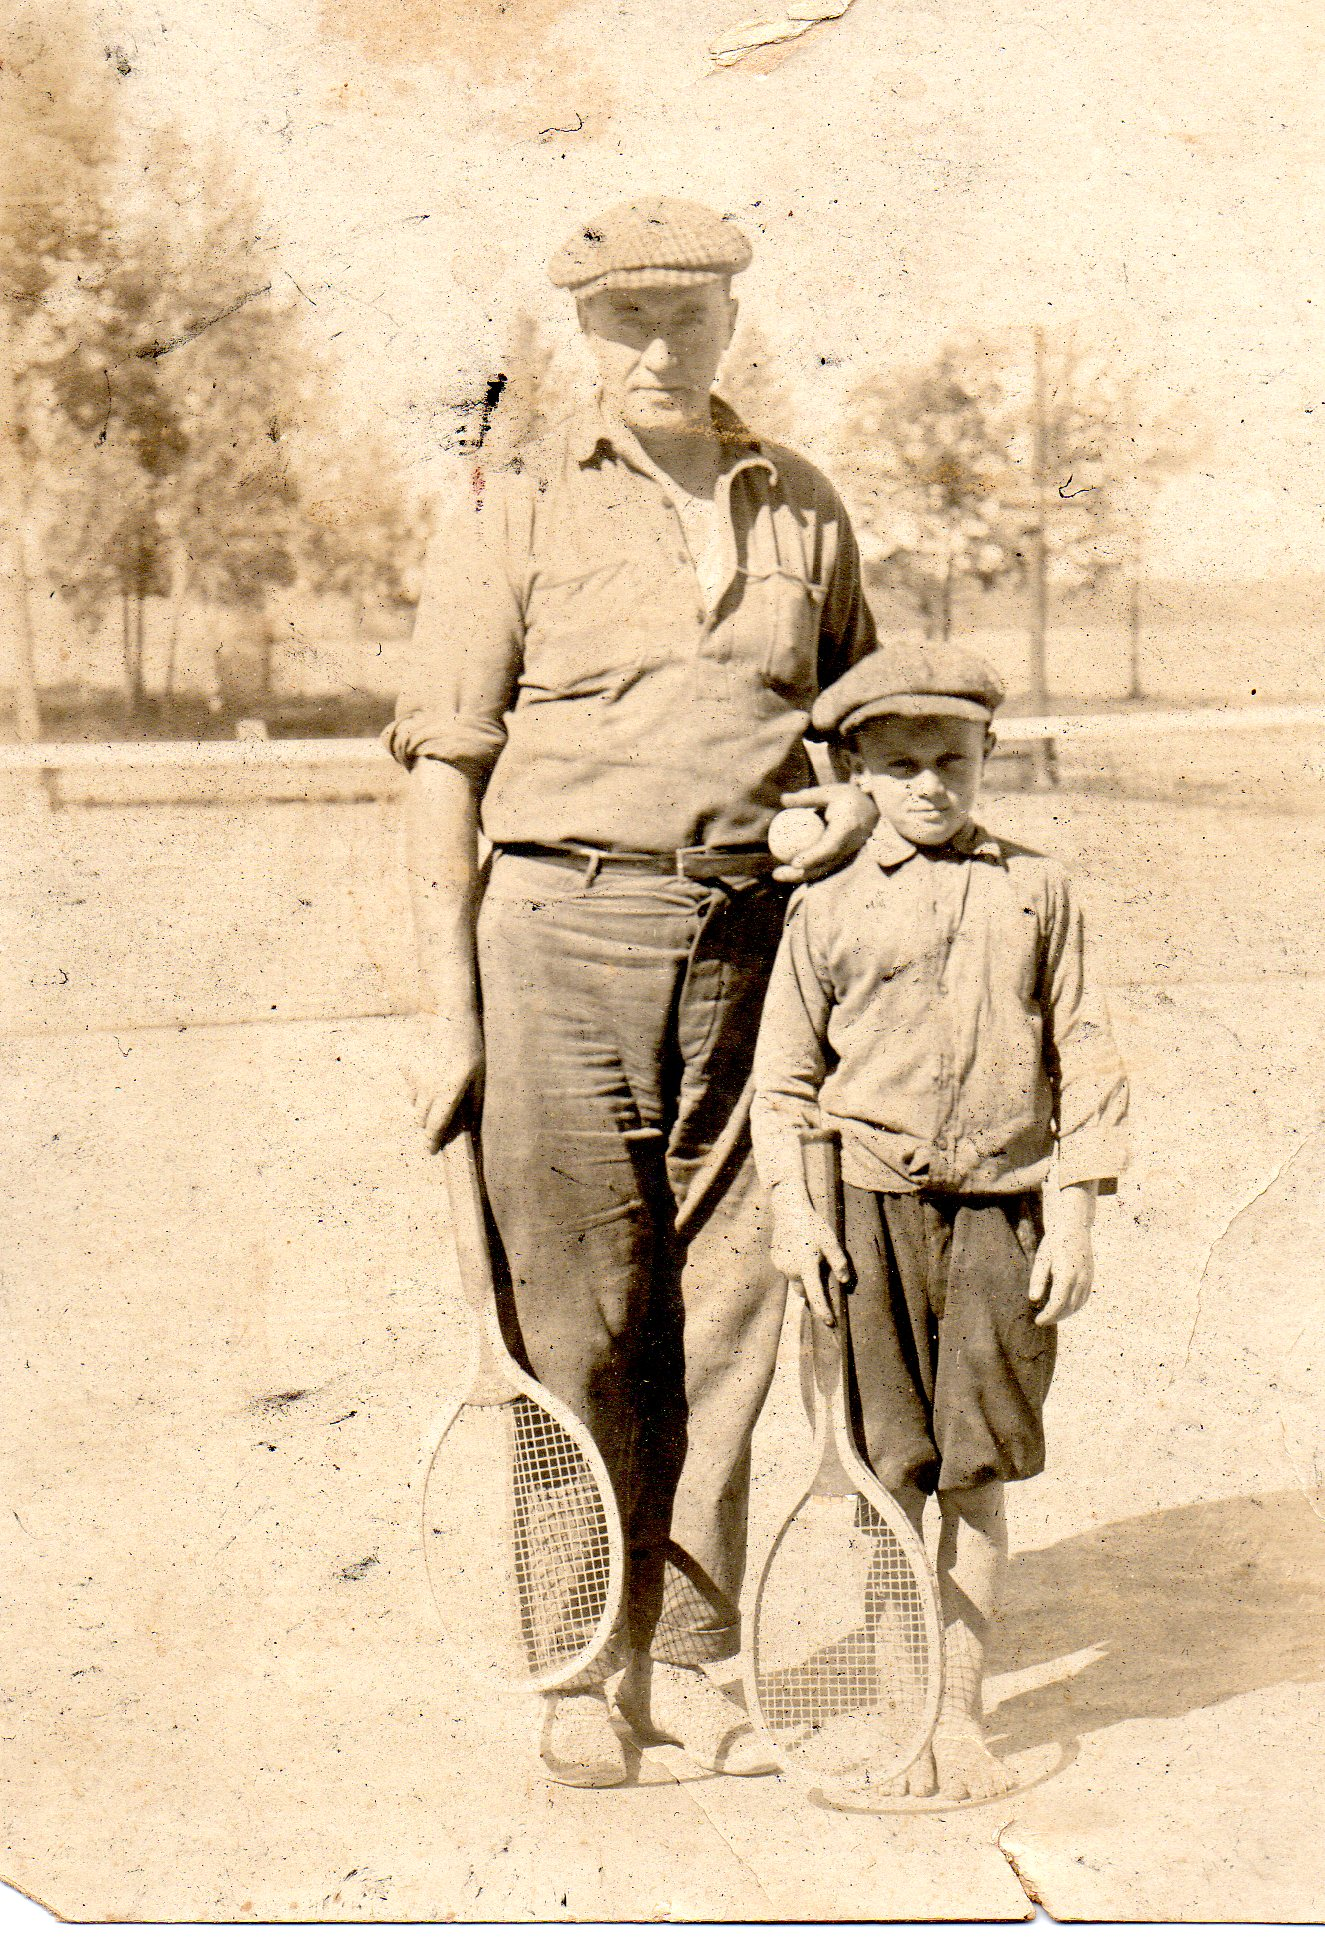 James Durkin & unknown child. James Durkin was the director for Lakewood Theater during the summers of 1901, 1902, 1908 & 1918